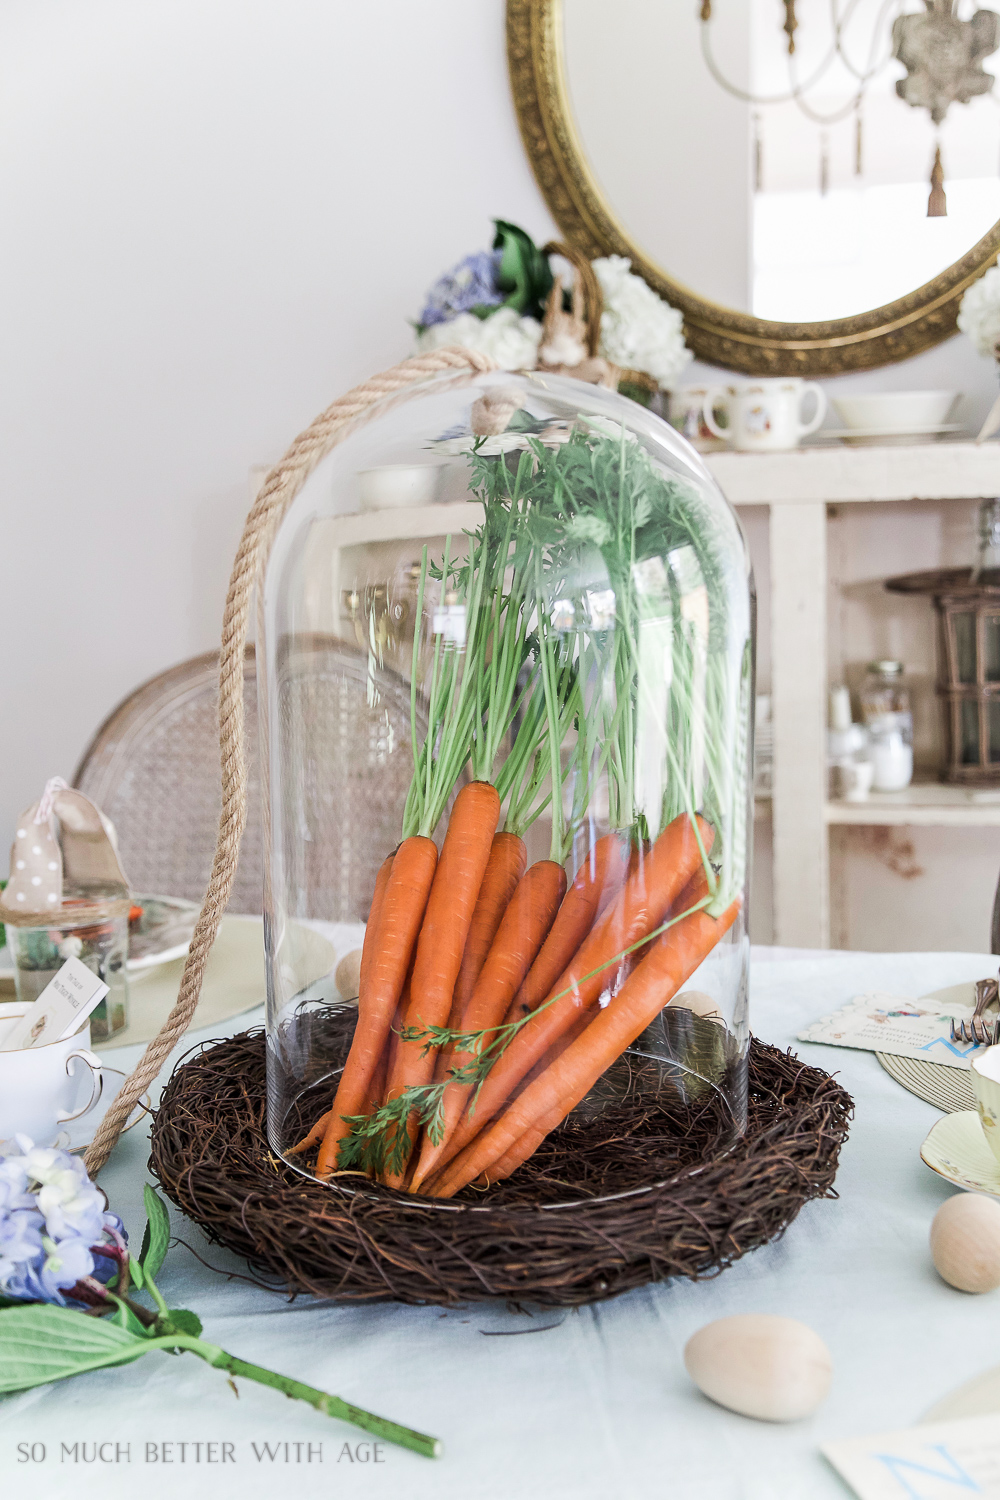 Peter Rabbit Inspired Easter Table - So Much Better With Age